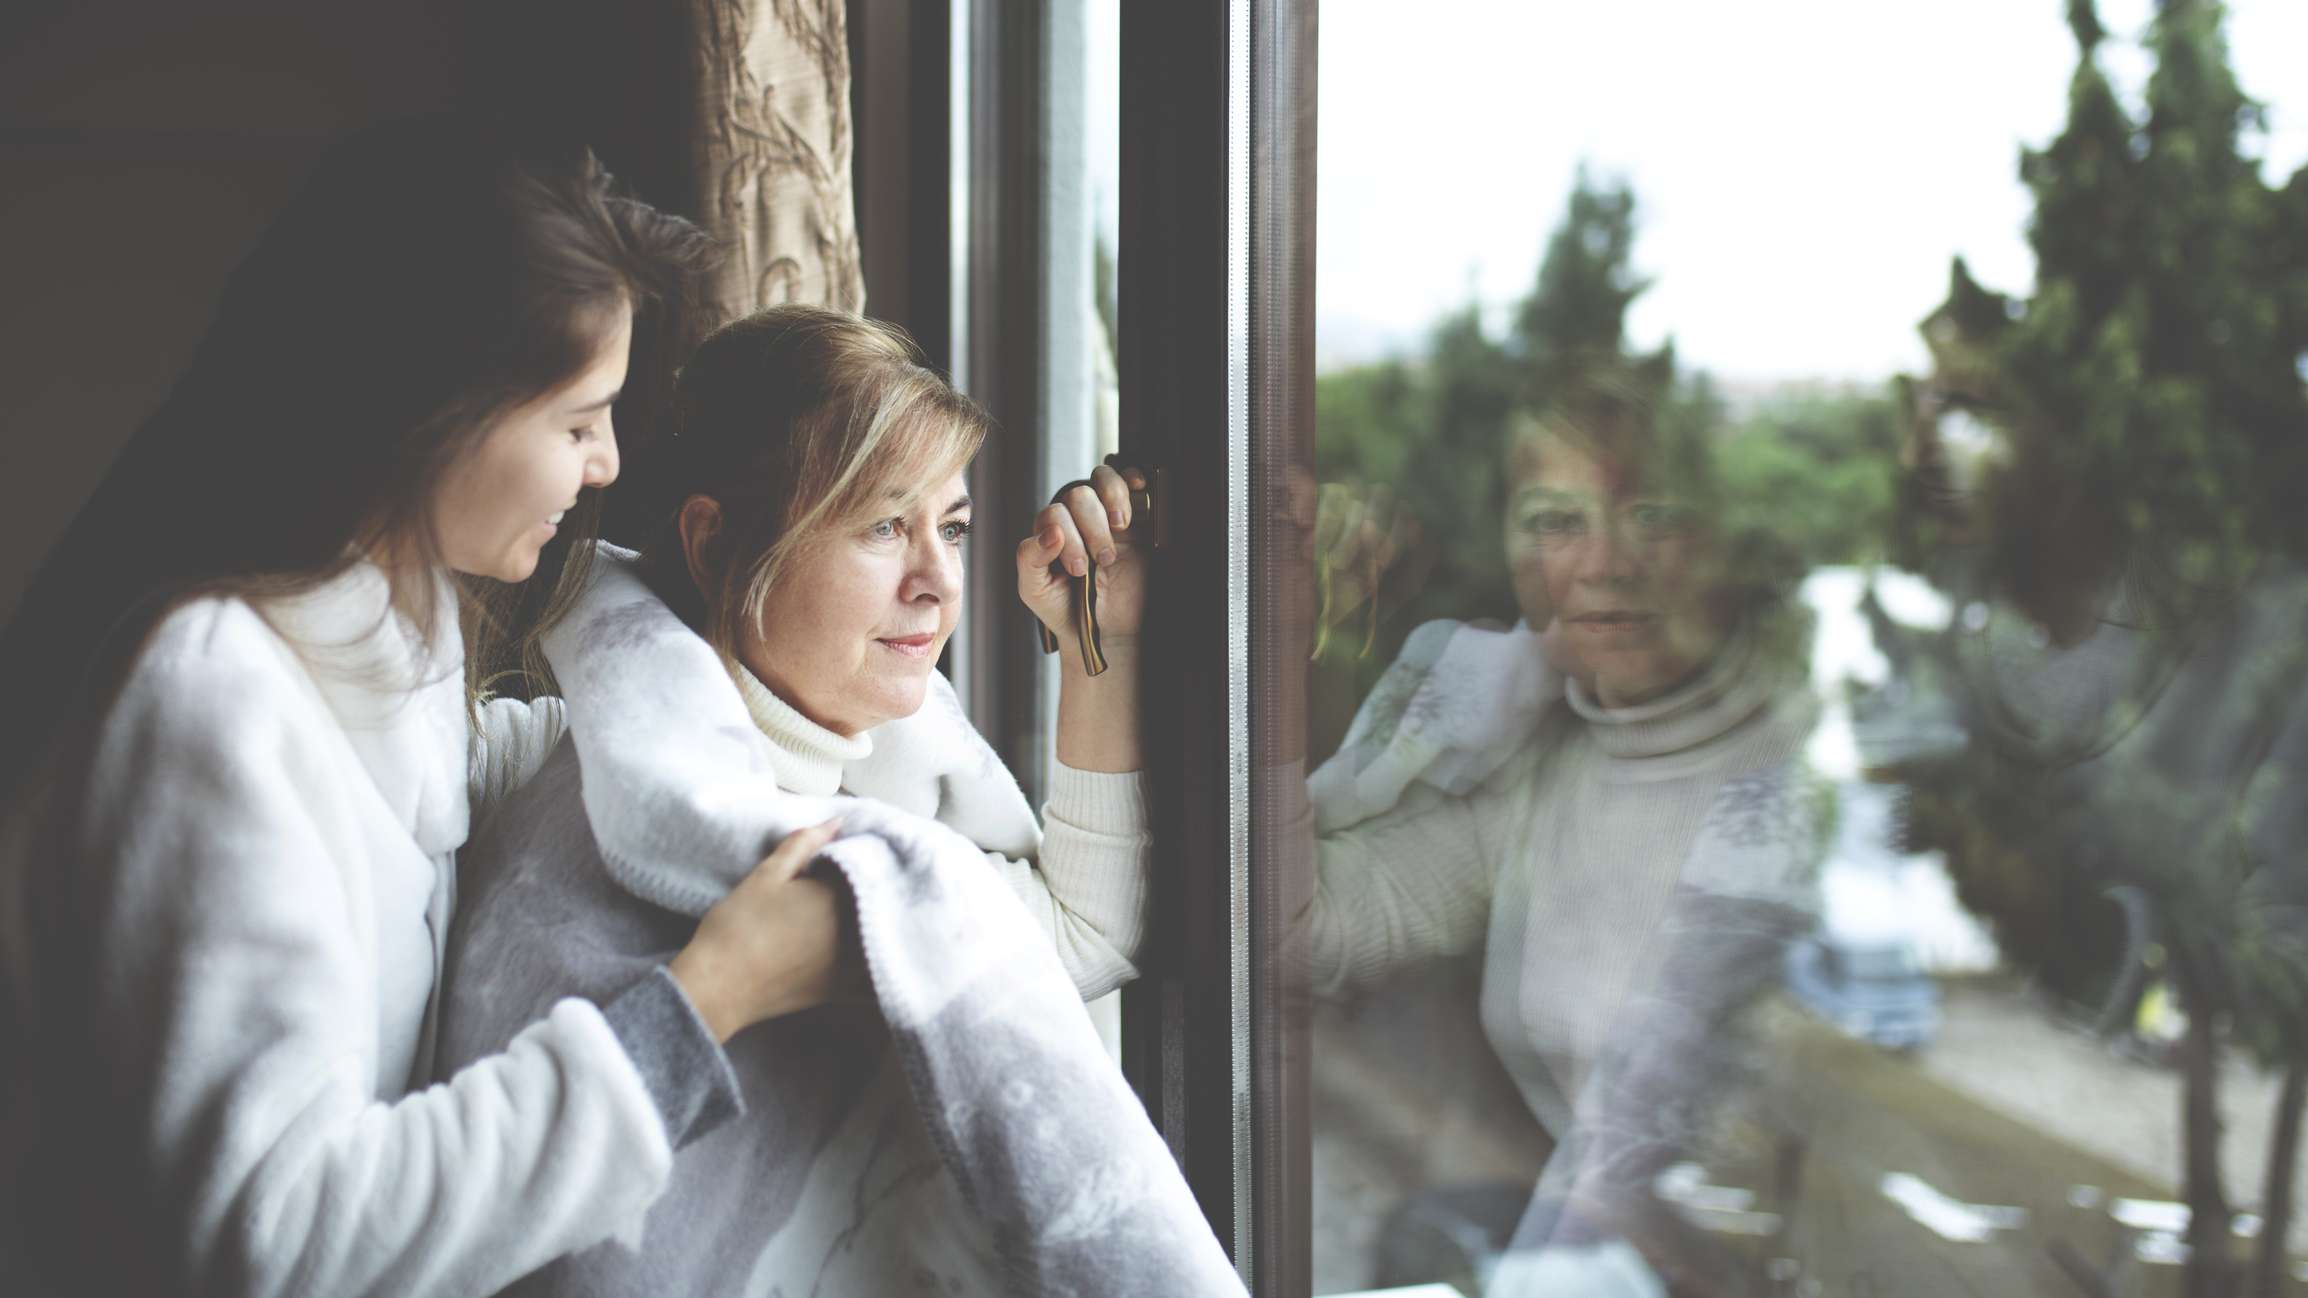 Young woman wrapping up an older woman at window